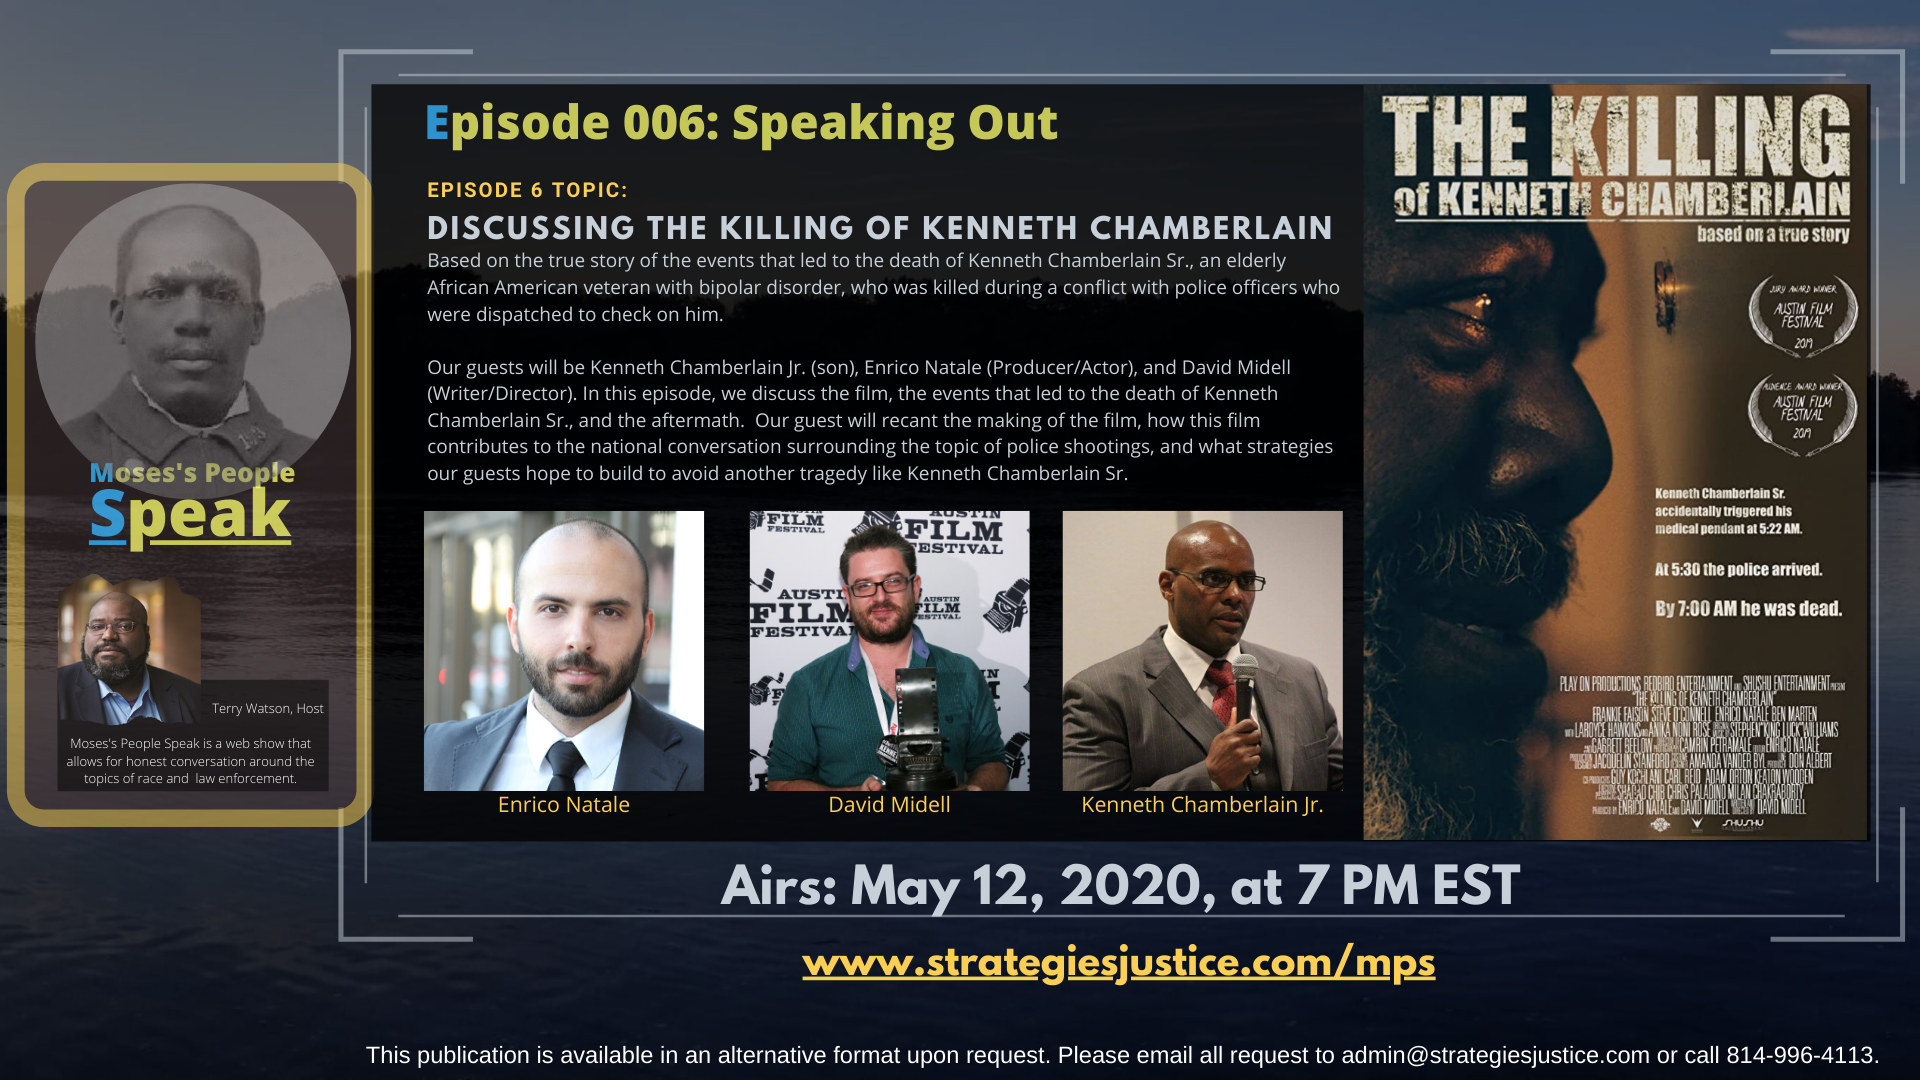 Ep 006 DISCUSSING THE KILLING OF KENNETH CHAMBERLAIN